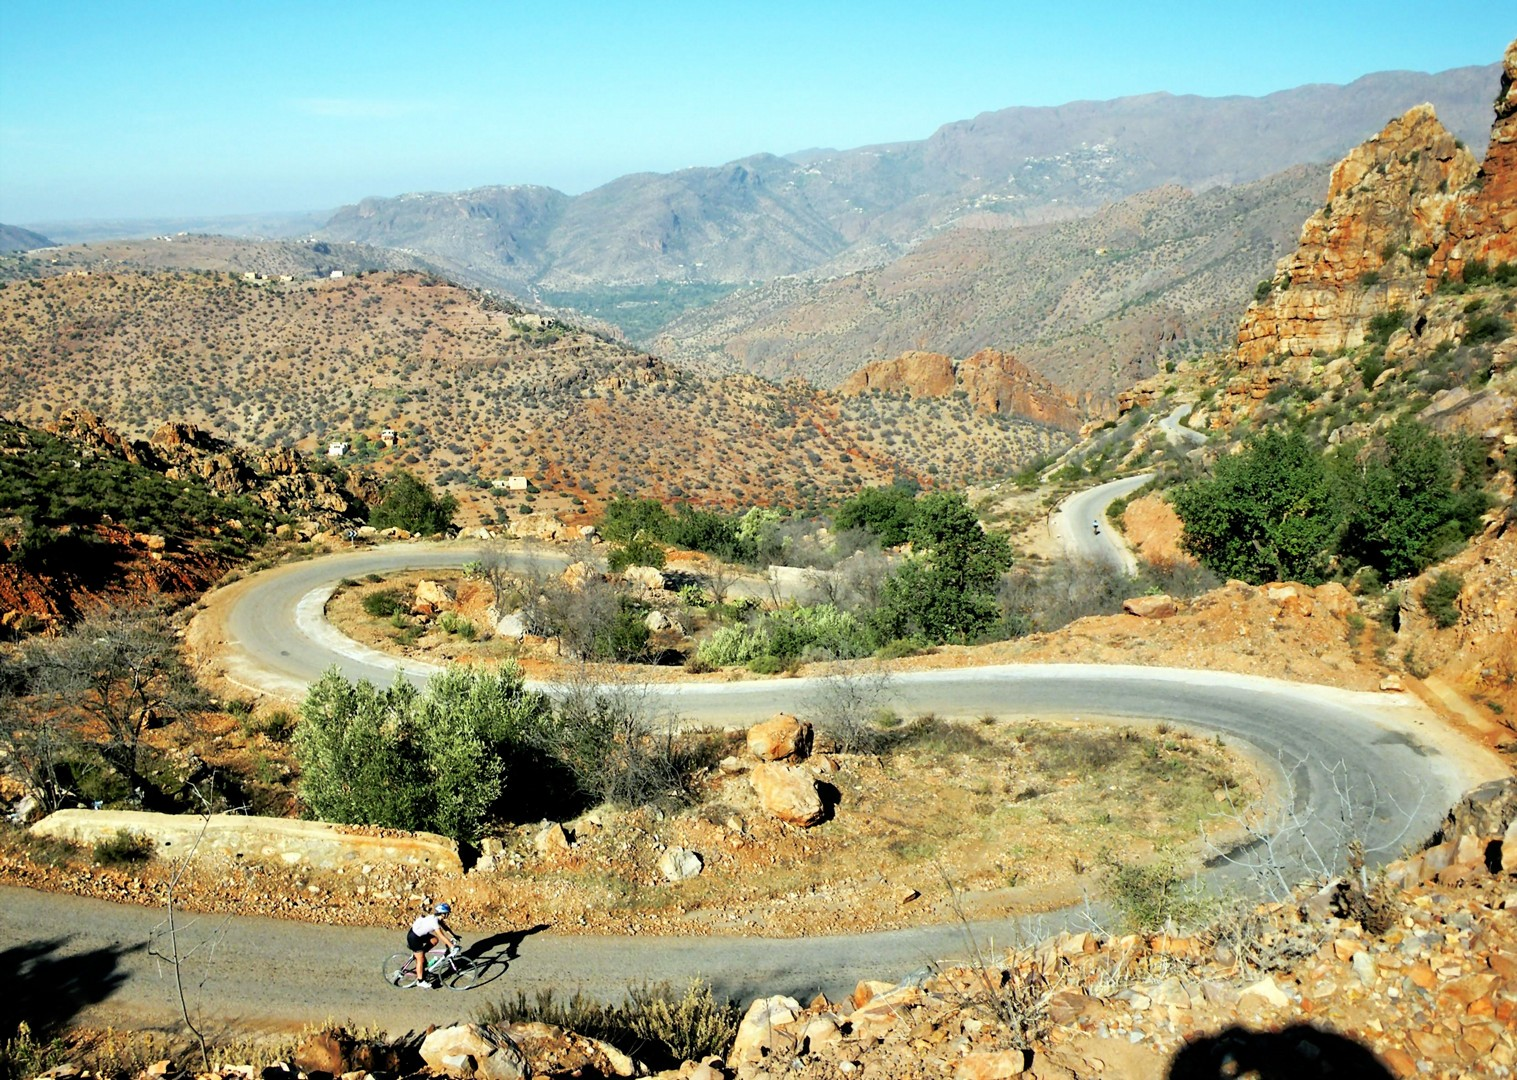 guided-road-cycling-holiday-road-atlas-morocco-douar-samra.jpg - Morocco - Road Atlas - Road Cycling